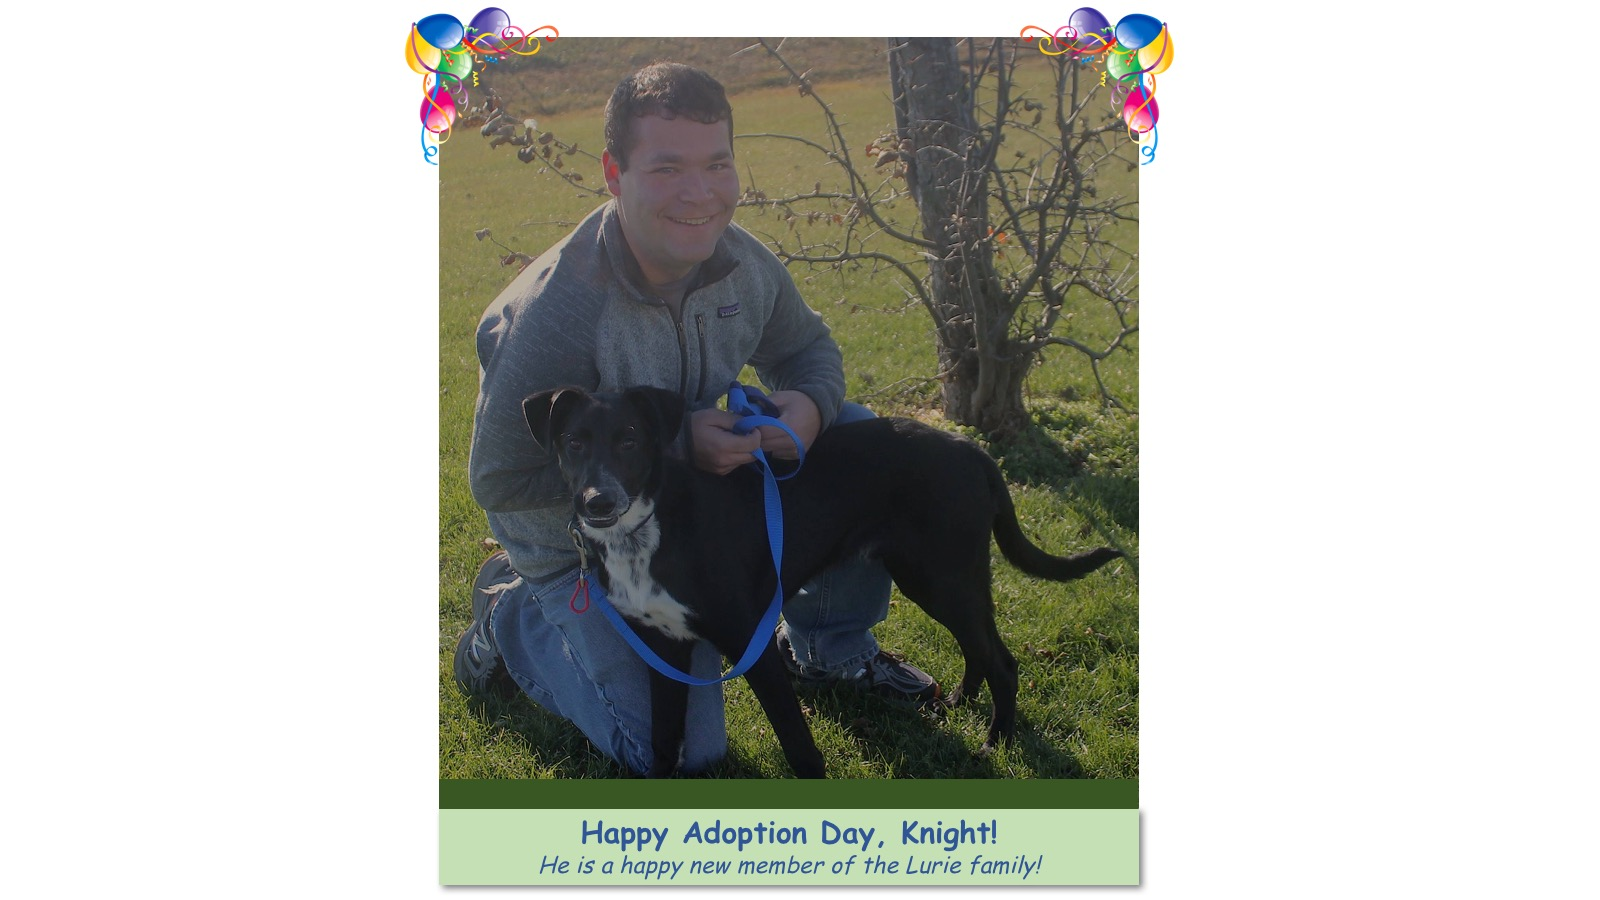 Knight_Adoption_photo.jpg